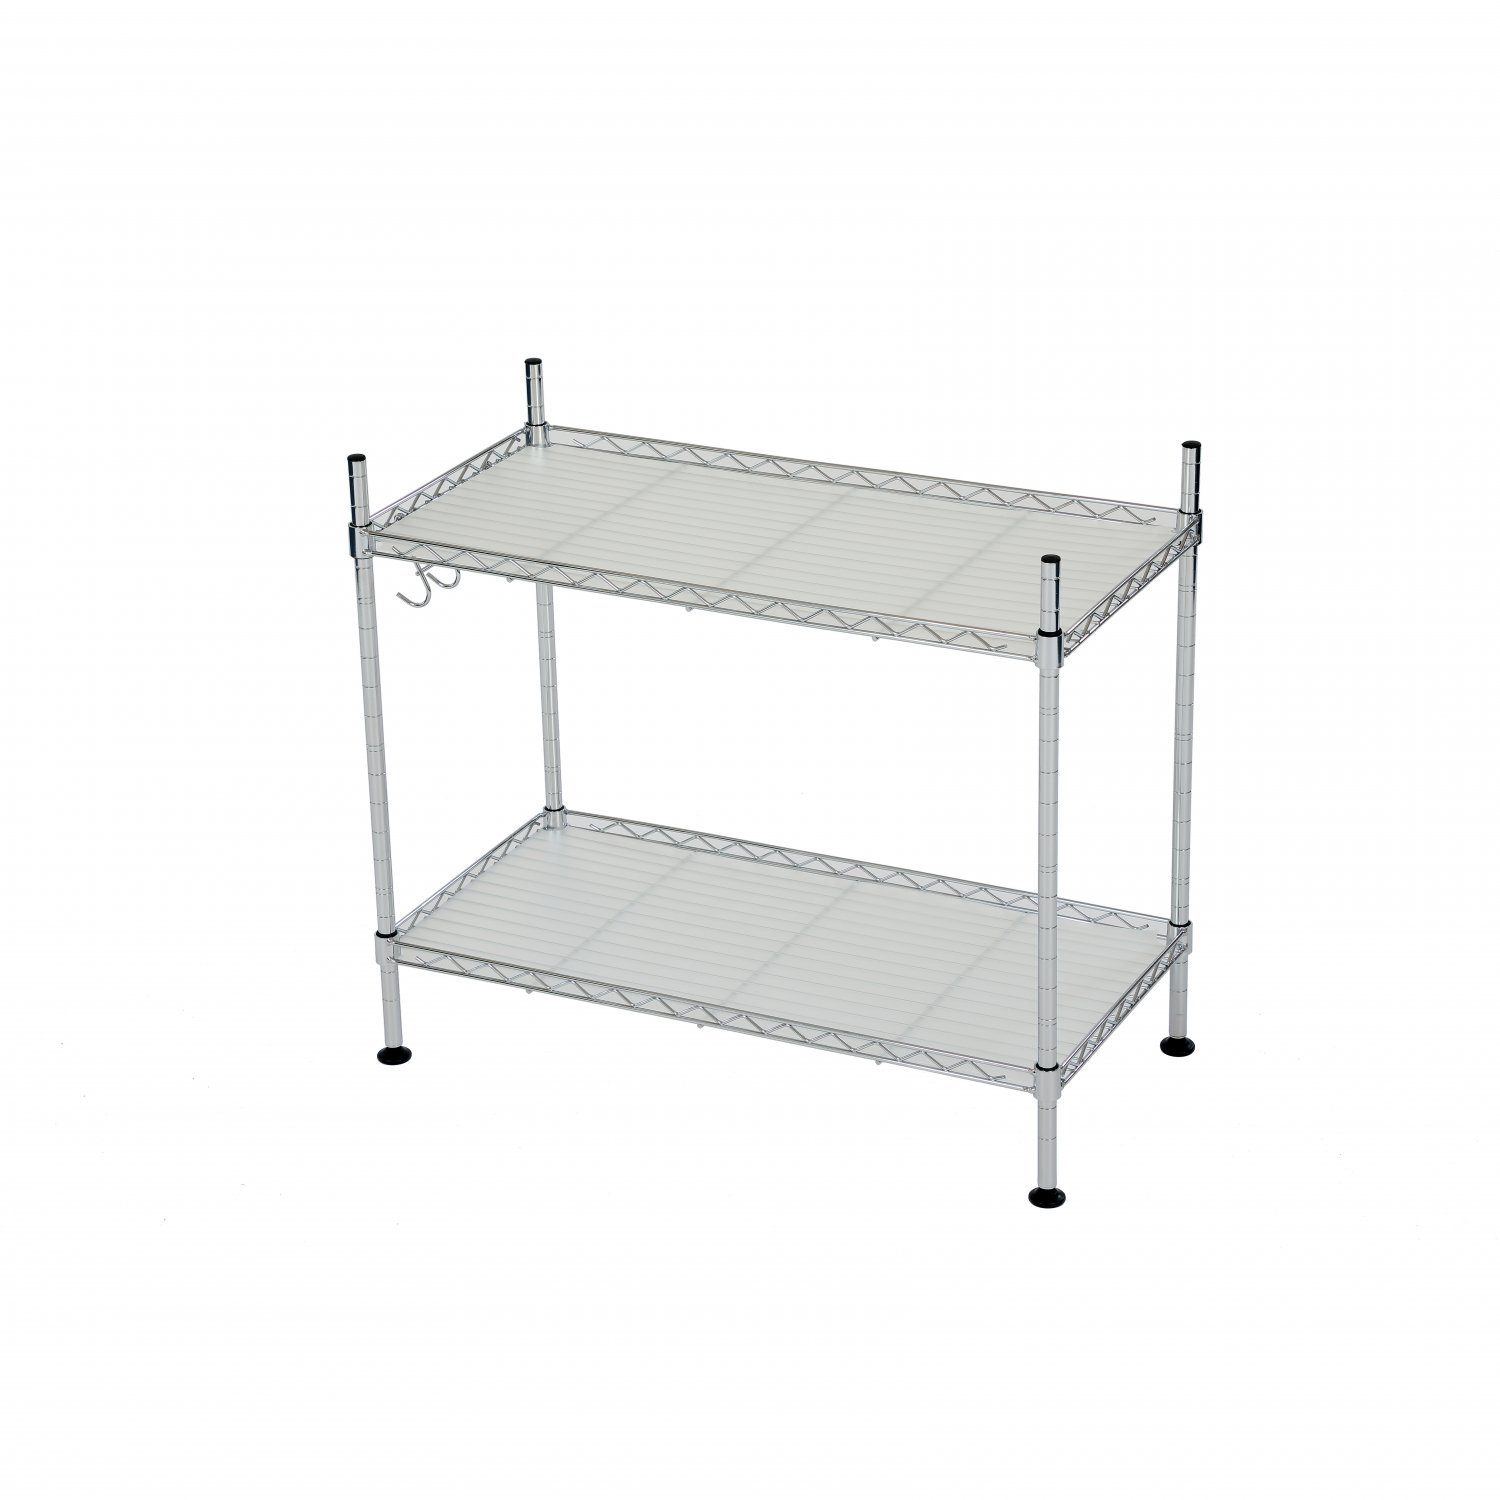 2 Tier Heavy Duty Steel Wire Microwave Oven Rack Kitchen Shelf